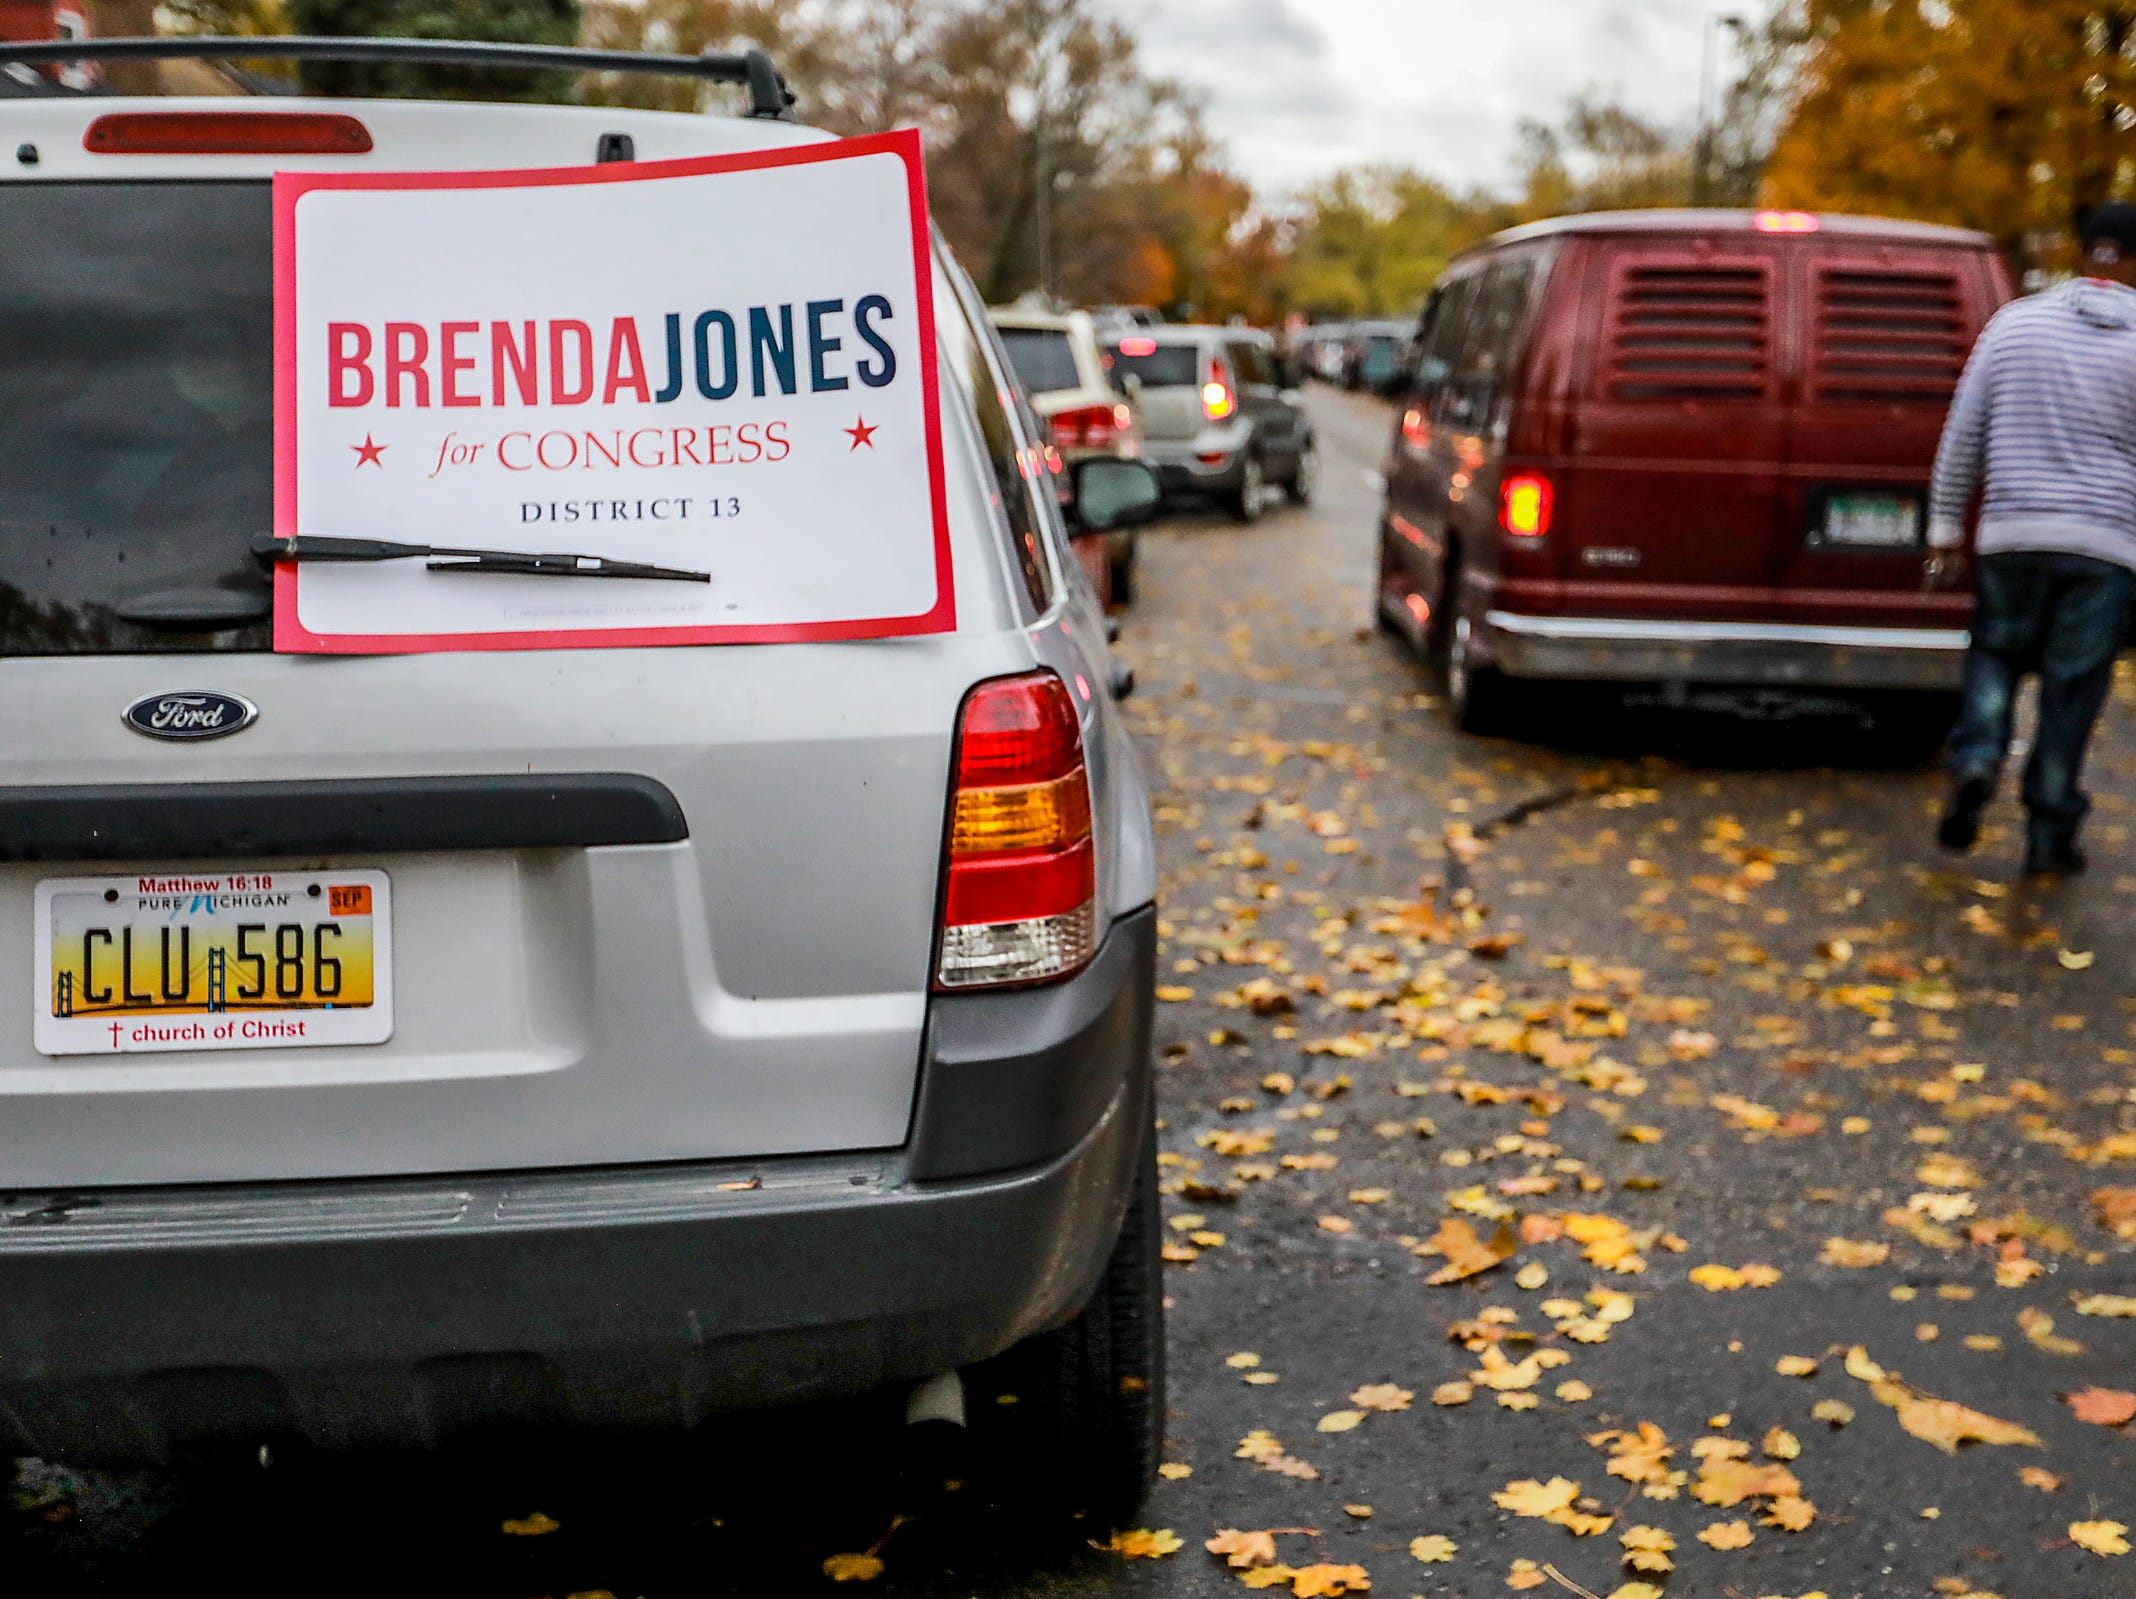 A car can be seen with a Brenda Jones campaign sign as traffic backs up in front of Bow Elementary as people come to vote in the  Michigan midterm elections in Detroit on Tuesday, Nov. 6, 2018.